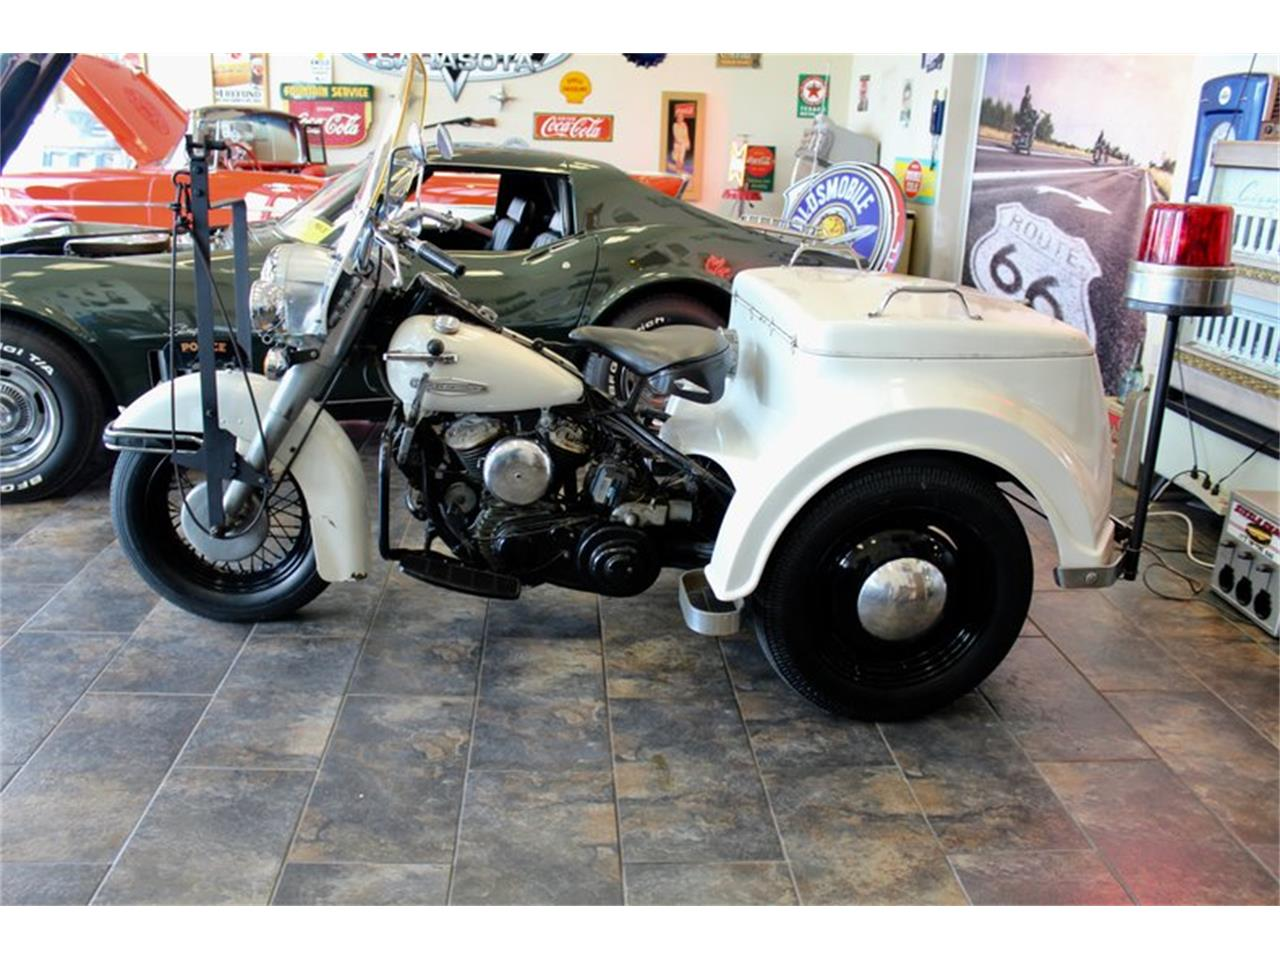 Large Picture of 1967 Motorcycle - $15,900.00 Offered by Classic Cars of Sarasota - PKVZ